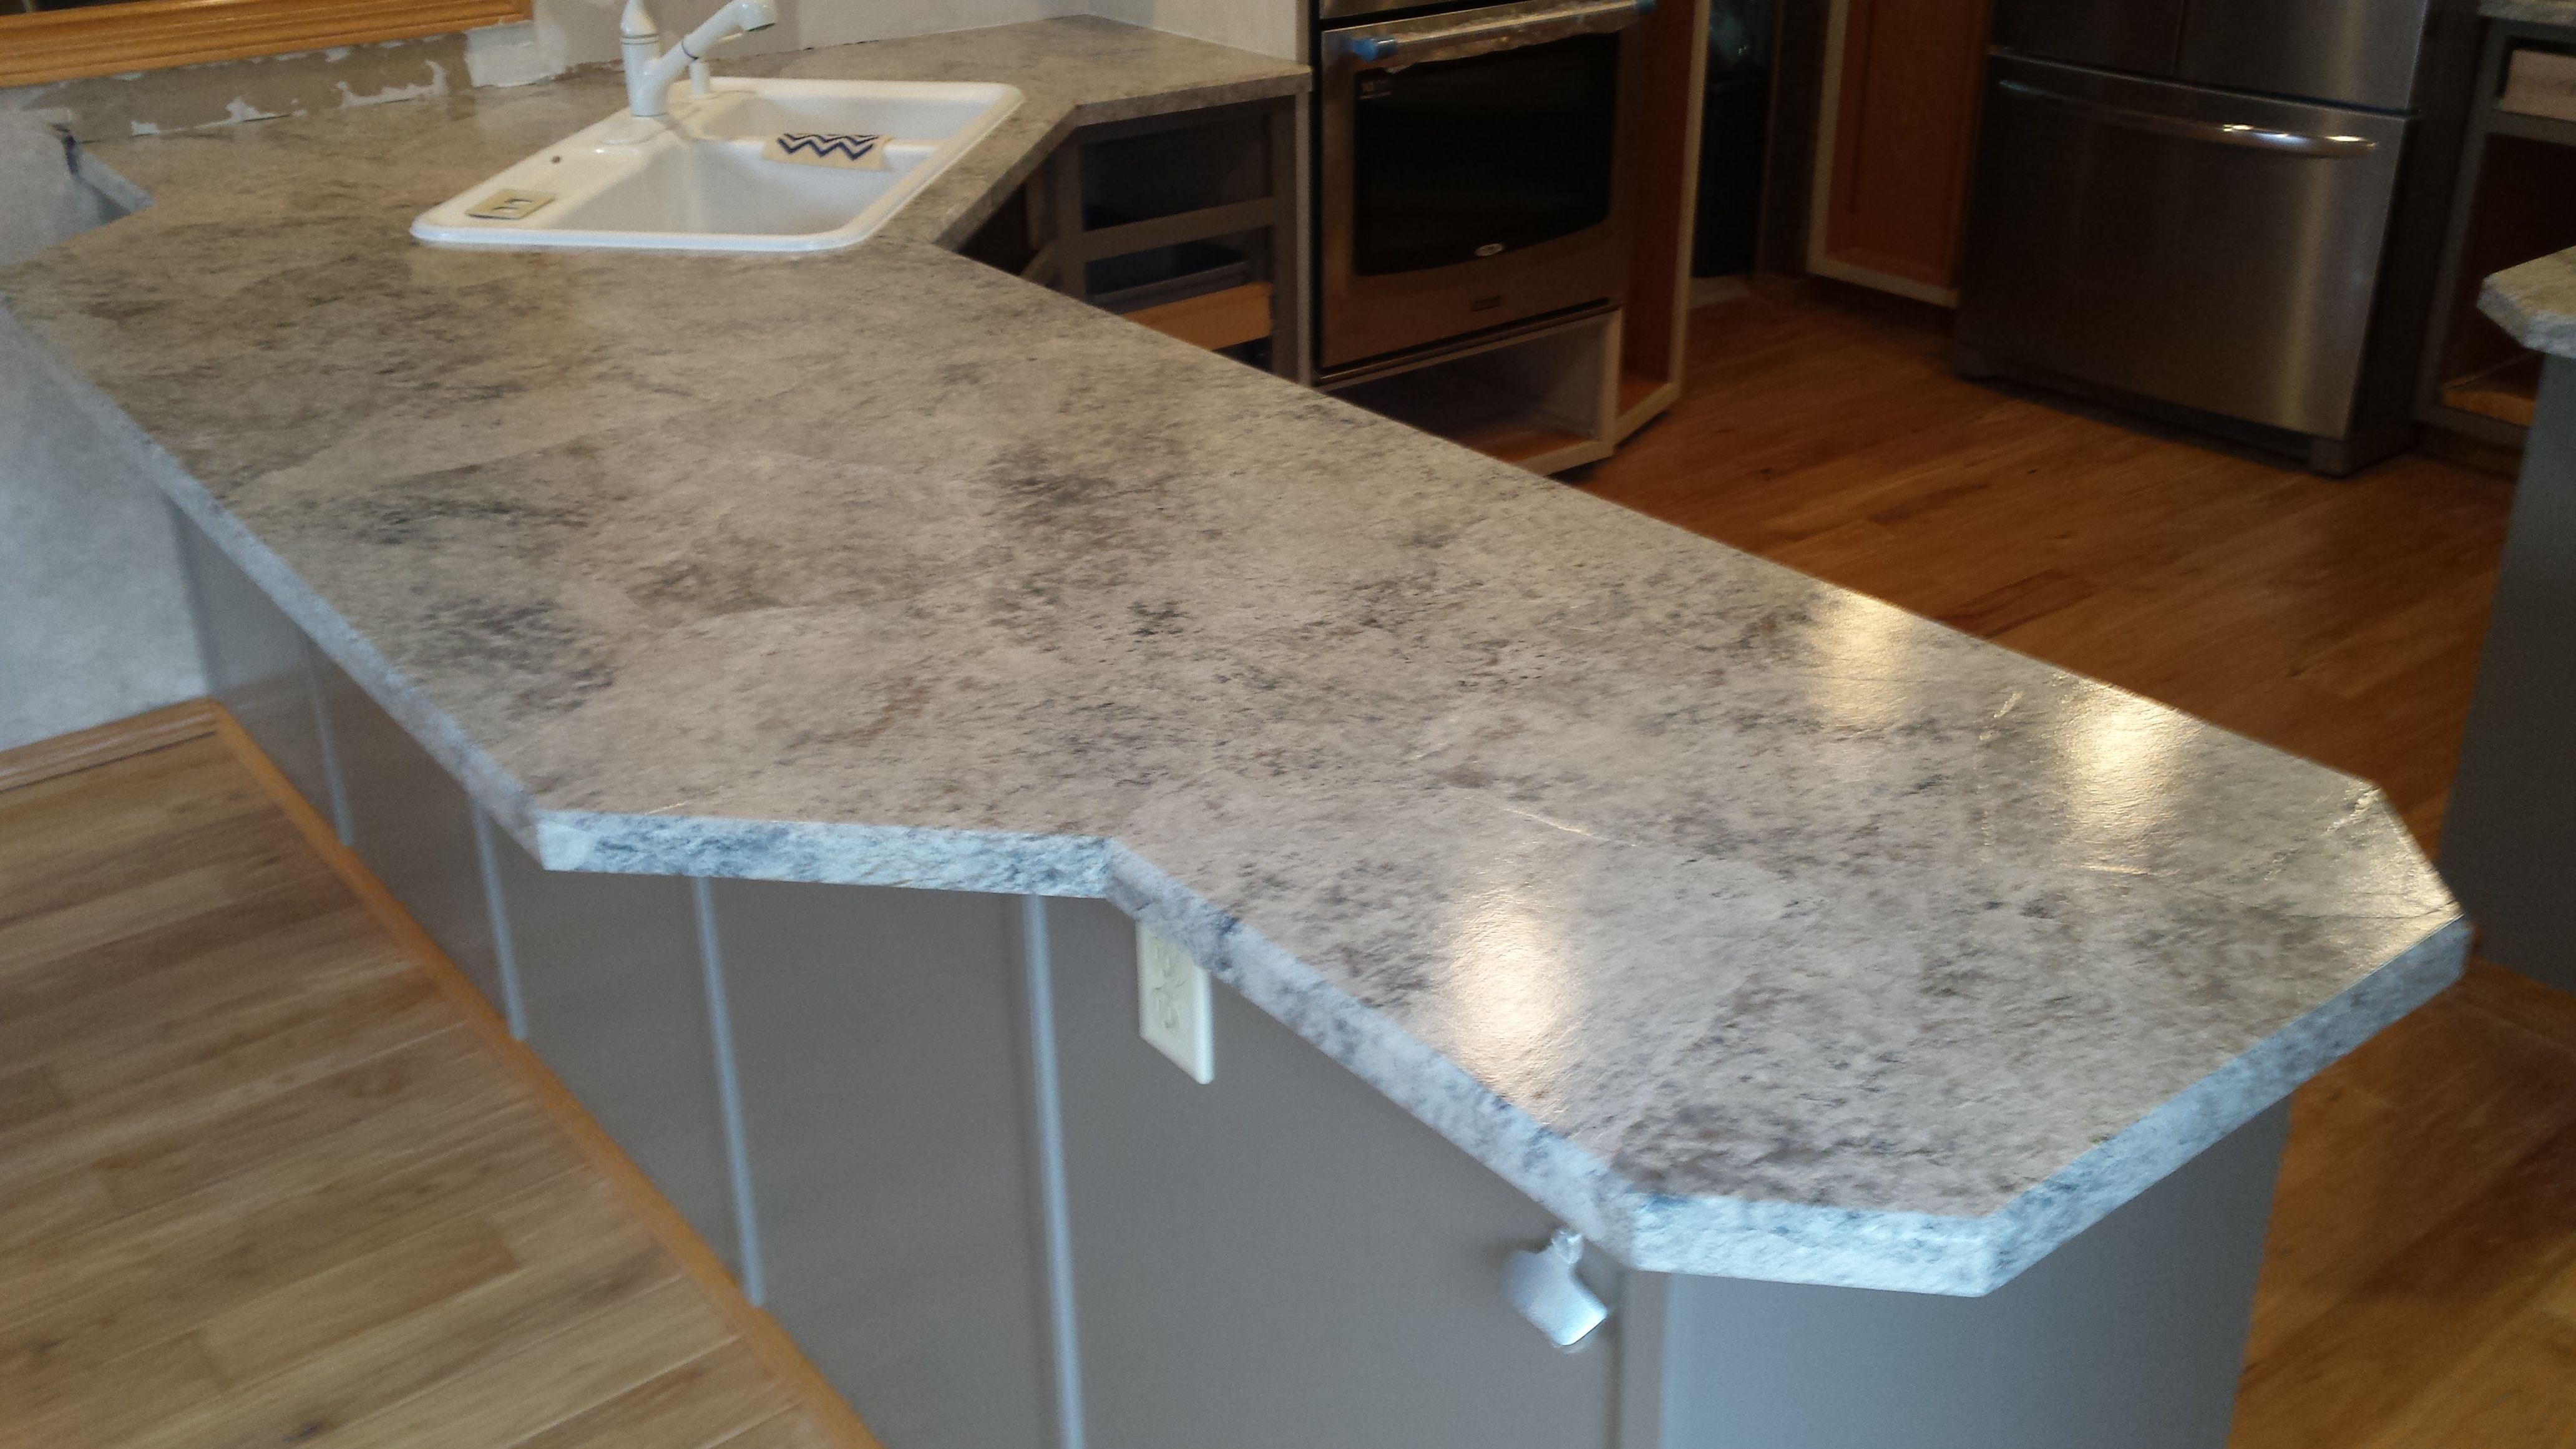 sterling refinish portfolio household resurface laminate countertops countertop kitchen services img before counter